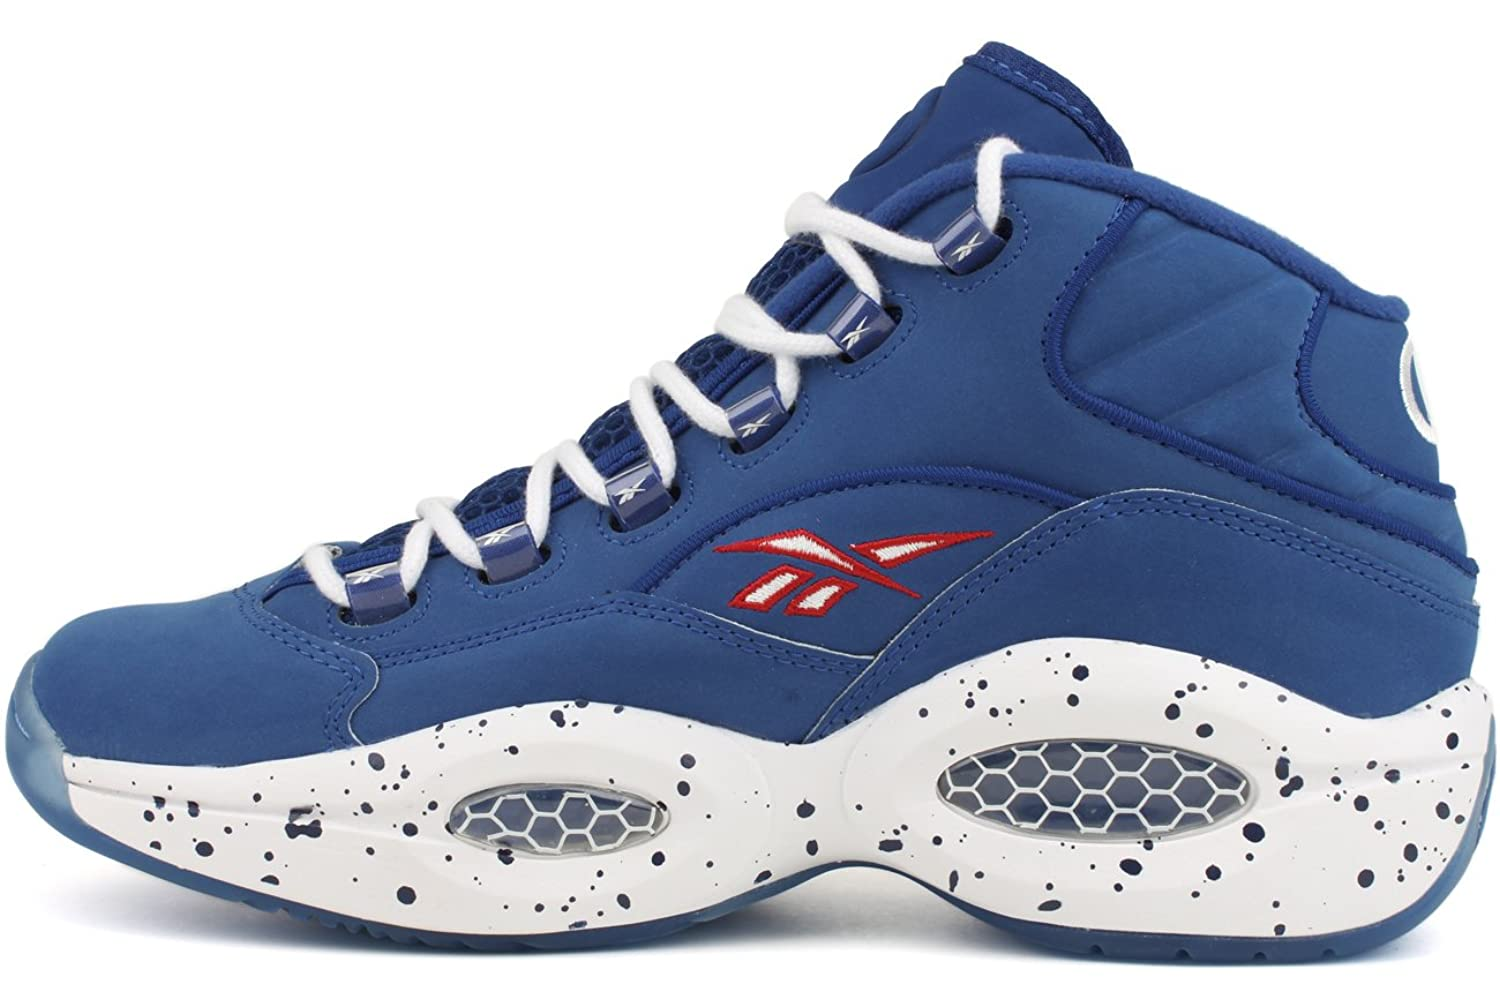 Reebok Sko For Menn Basketball FKVn2BNRRR